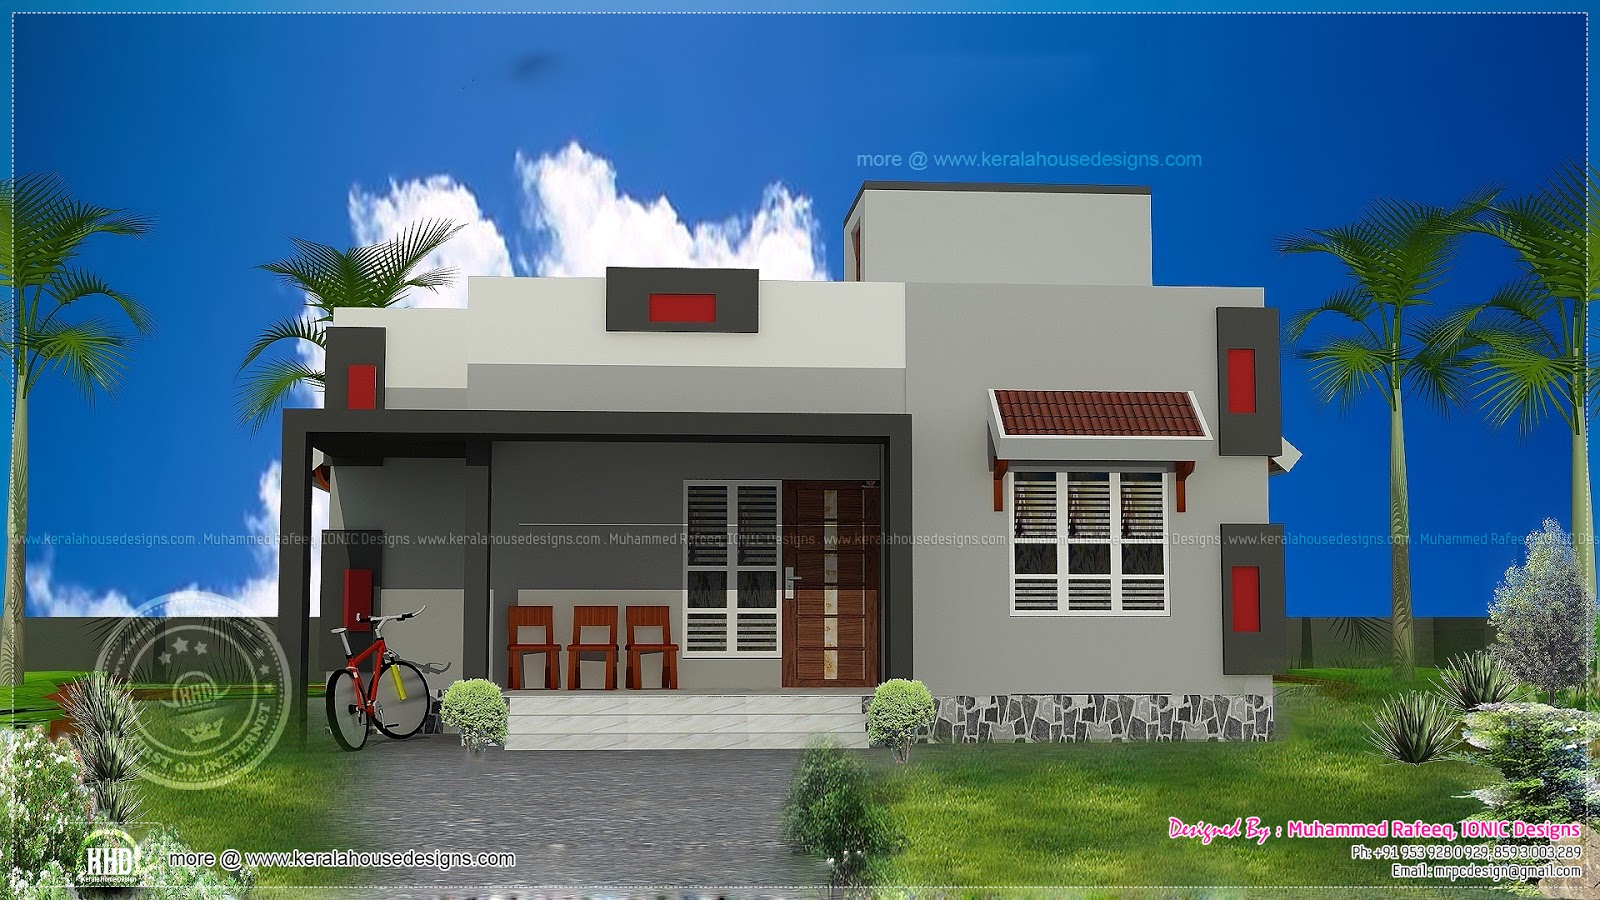 900 sq ft low cost house plan kerala home design and floor plans Home design and cost